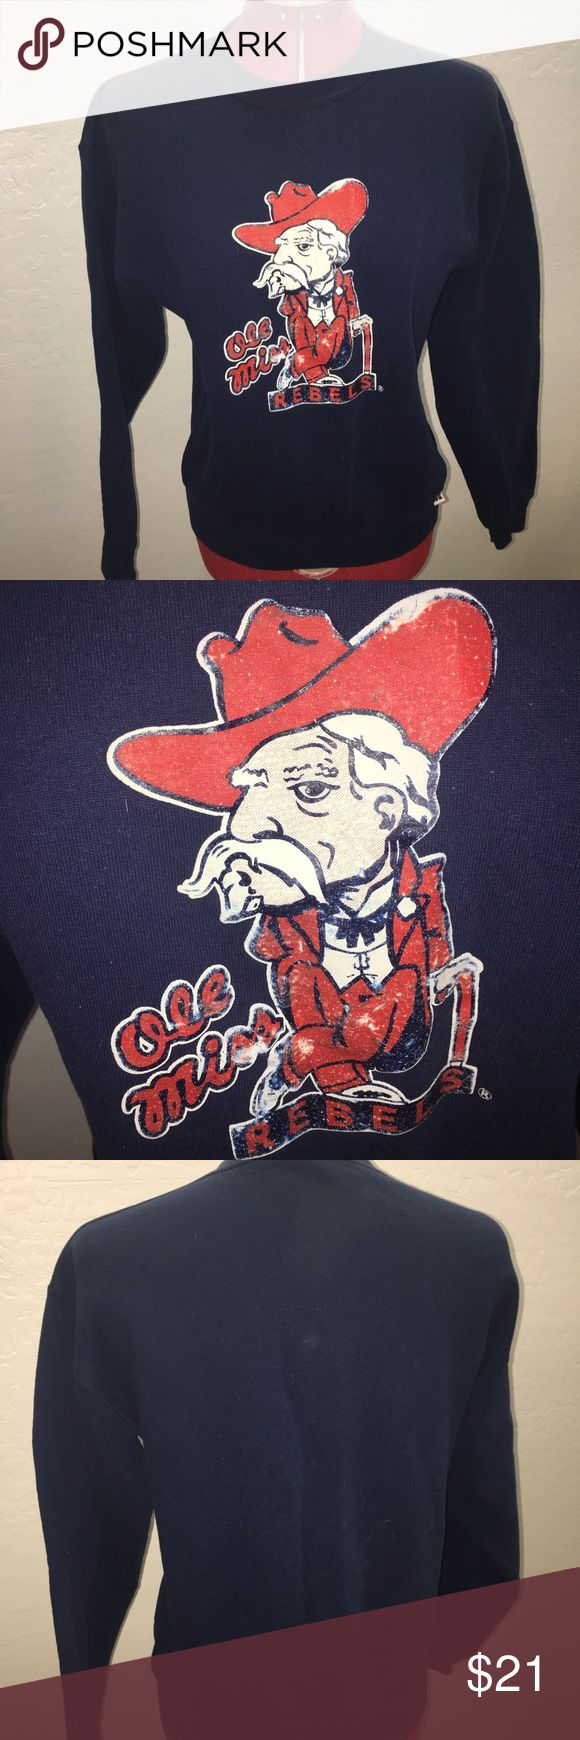 """Ole Miss Vintage Sweatshirt Vintage! Yet has so much life left. Has so much character. Ribbed at the waist and at the neck. No stains or rips. The logo has some fading but it adds to the character of the sweatshirt. Tag says youth Large. Fits as an adult S/M. Cotton blend. 20"""" armpit to armpit. 19"""" across at waist laying flat. 23"""" long from shoulder. There is minor piling. Please see my other vintage listings. BUNDLE & SAVE 20%!! Sweaters Crew & Scoop Necks"""